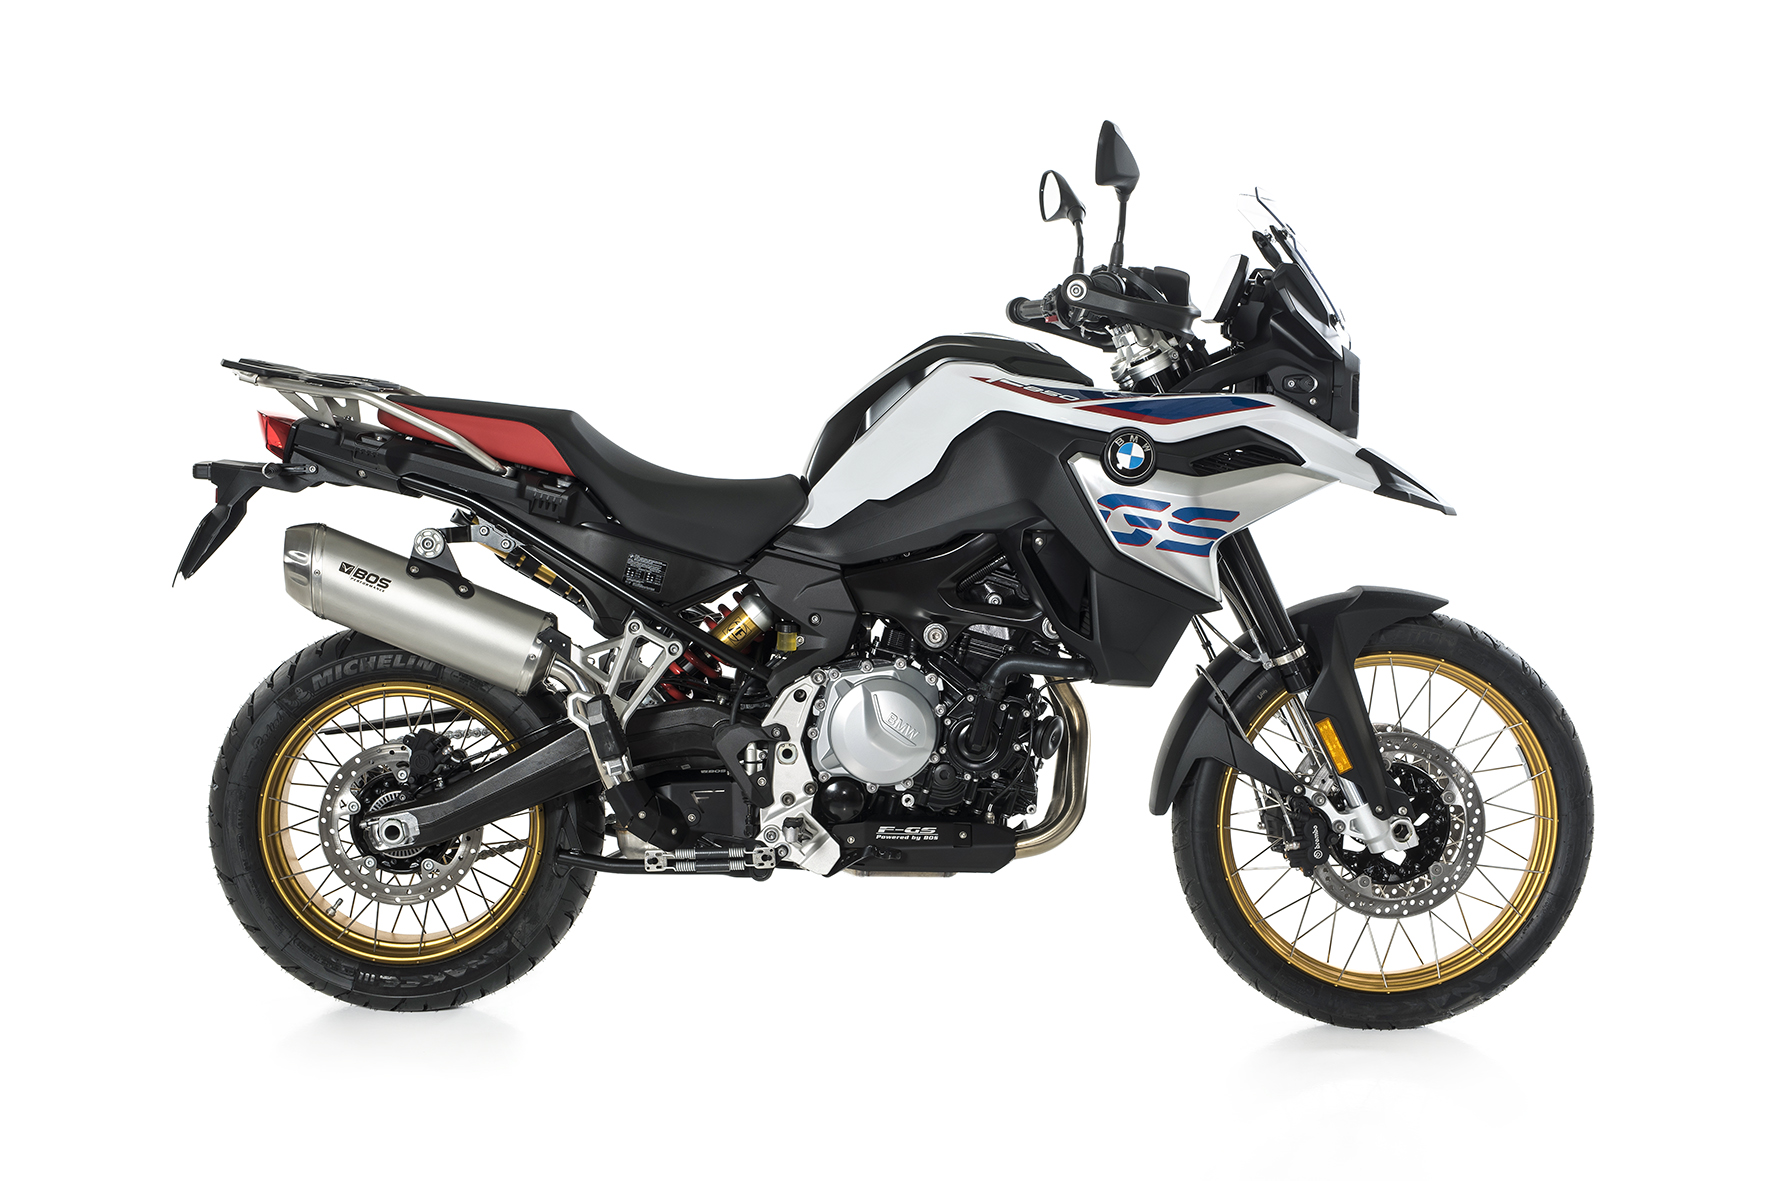 F 750 GS / F 850 GS Dune Fox Slip-on Euro 4